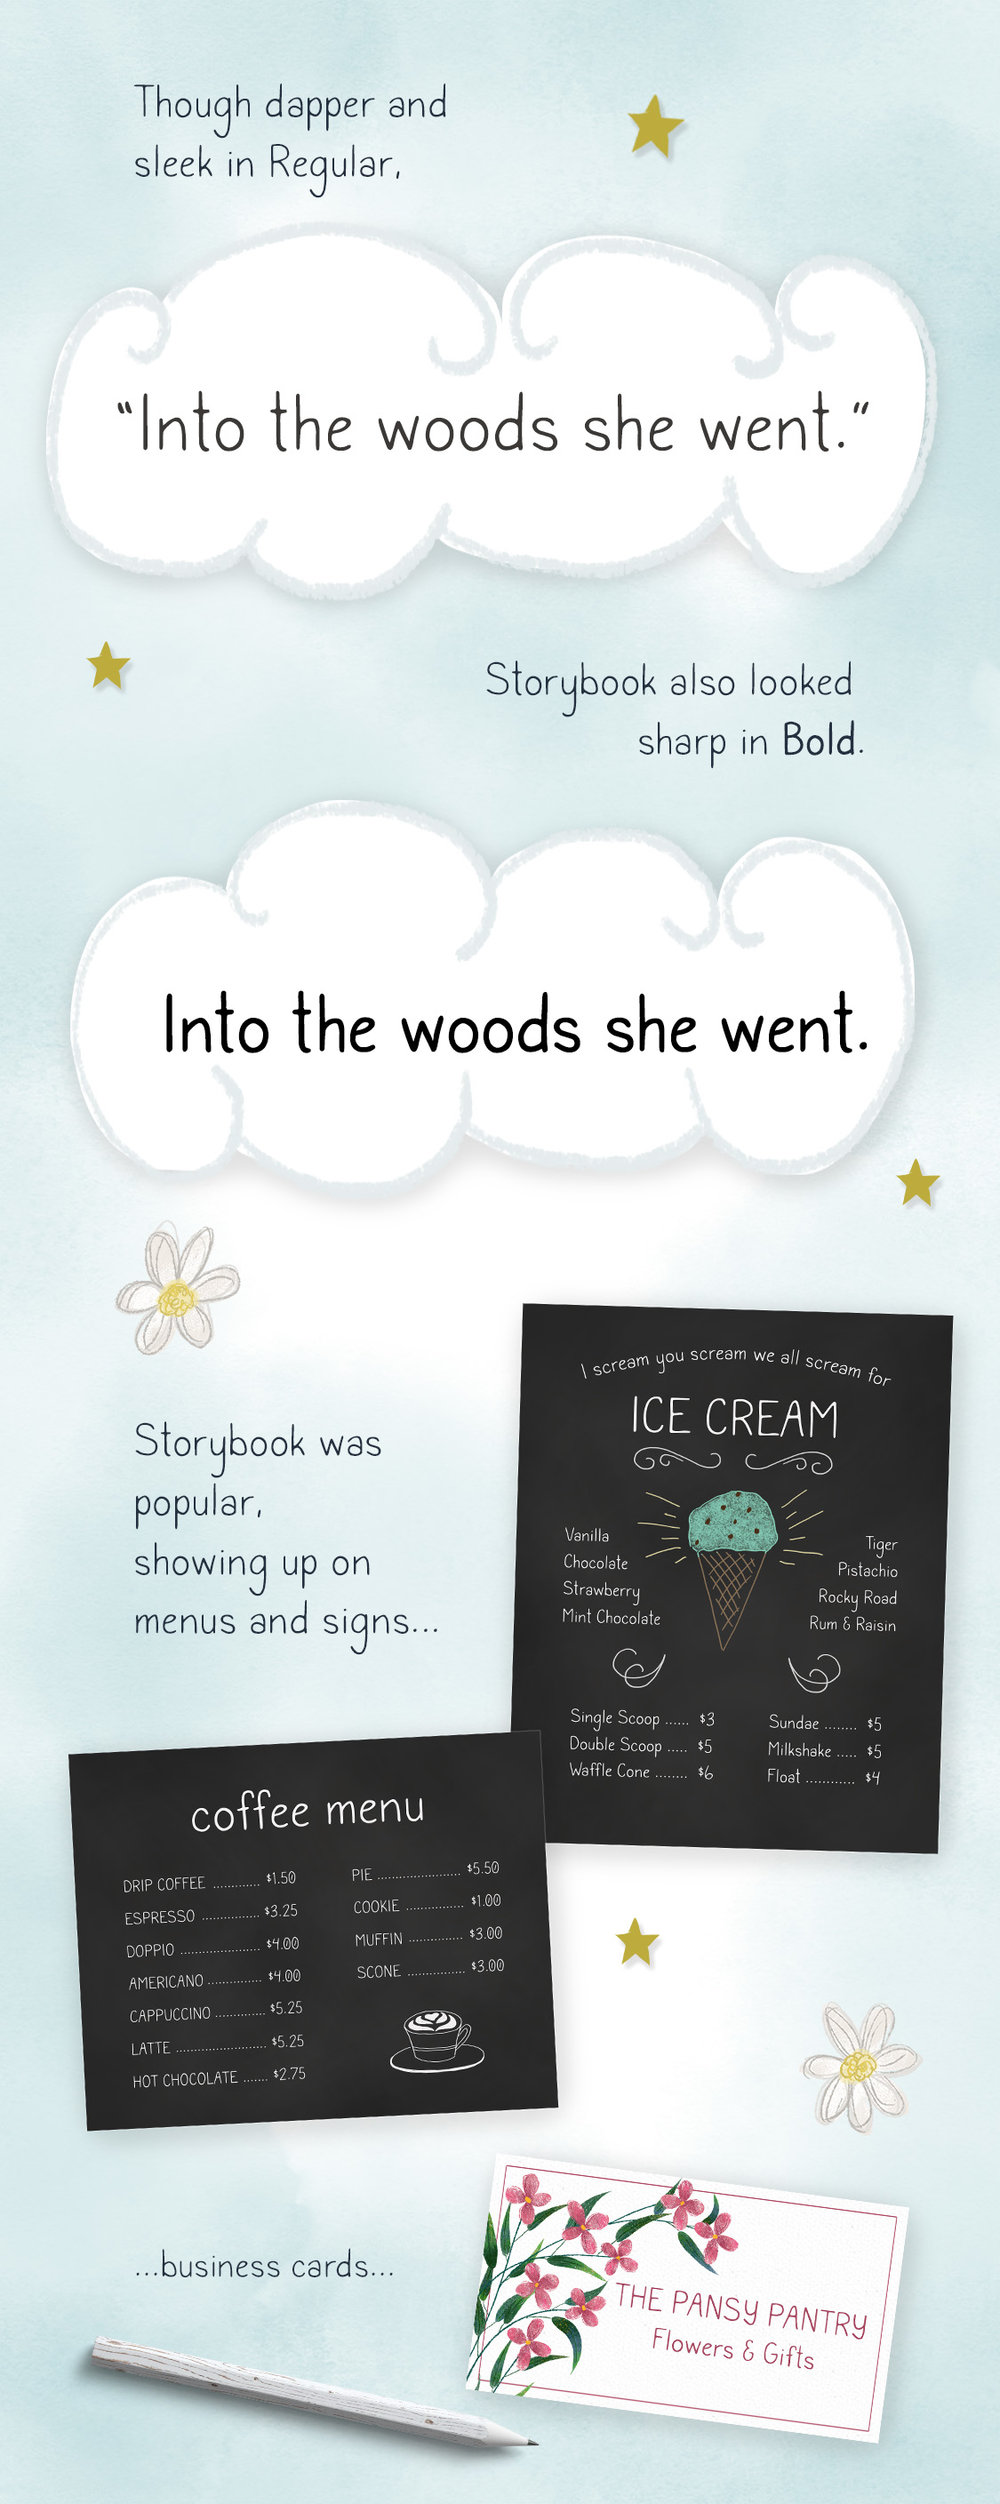 storybook-preview-section-4.jpg